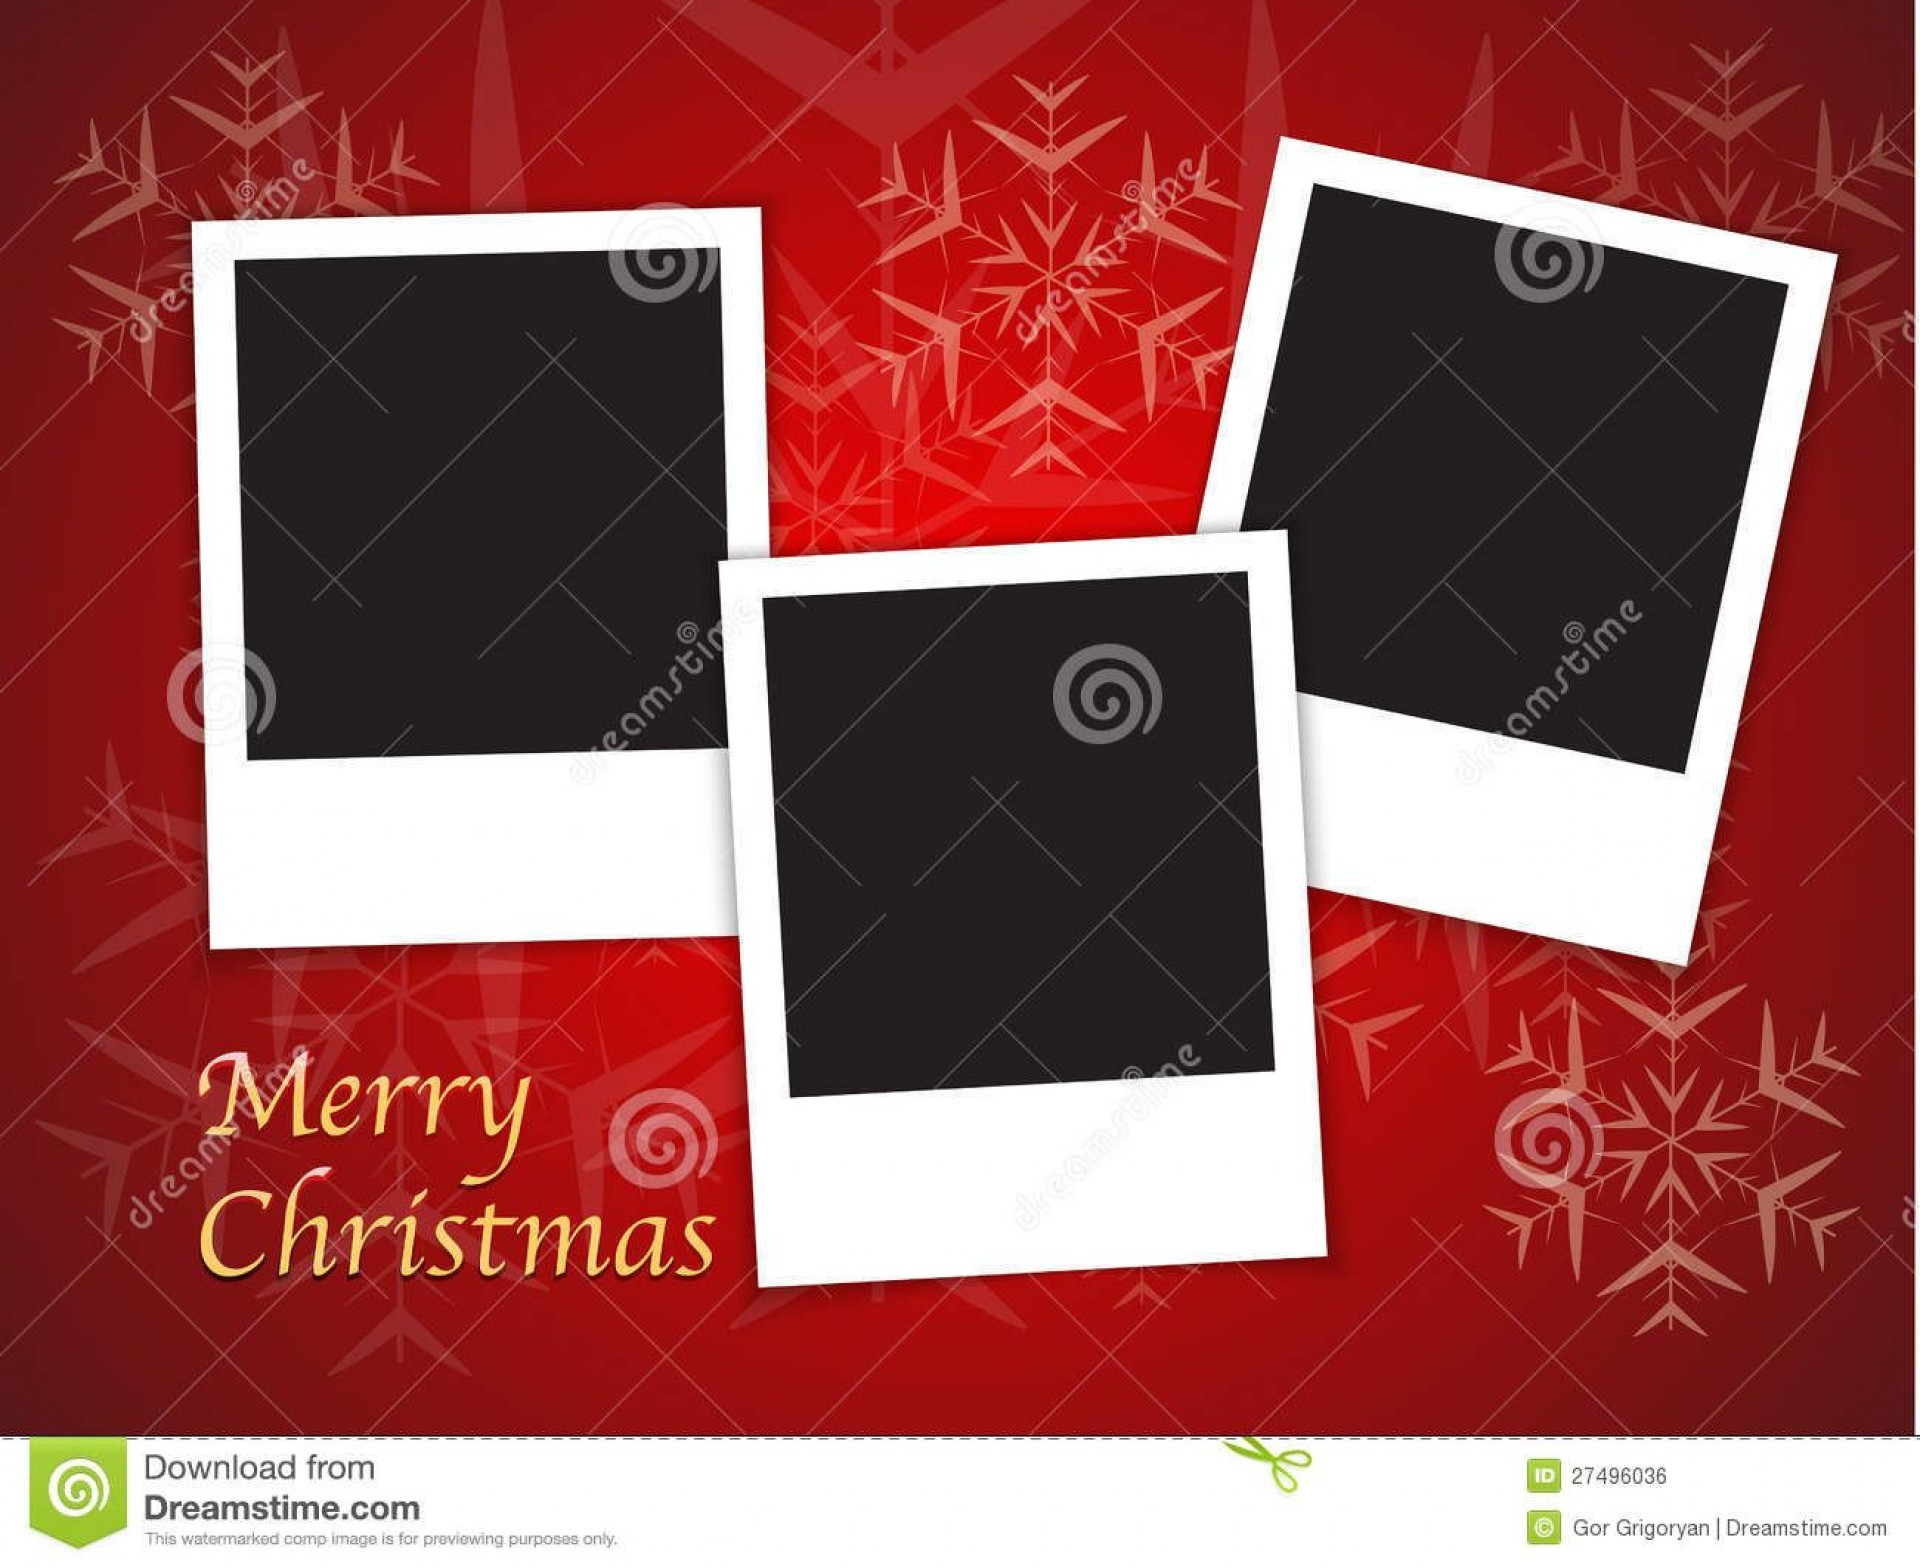 004 Beautiful Free Photo Christma Card Template Highest Quality  Templates For Photoshop Online1920